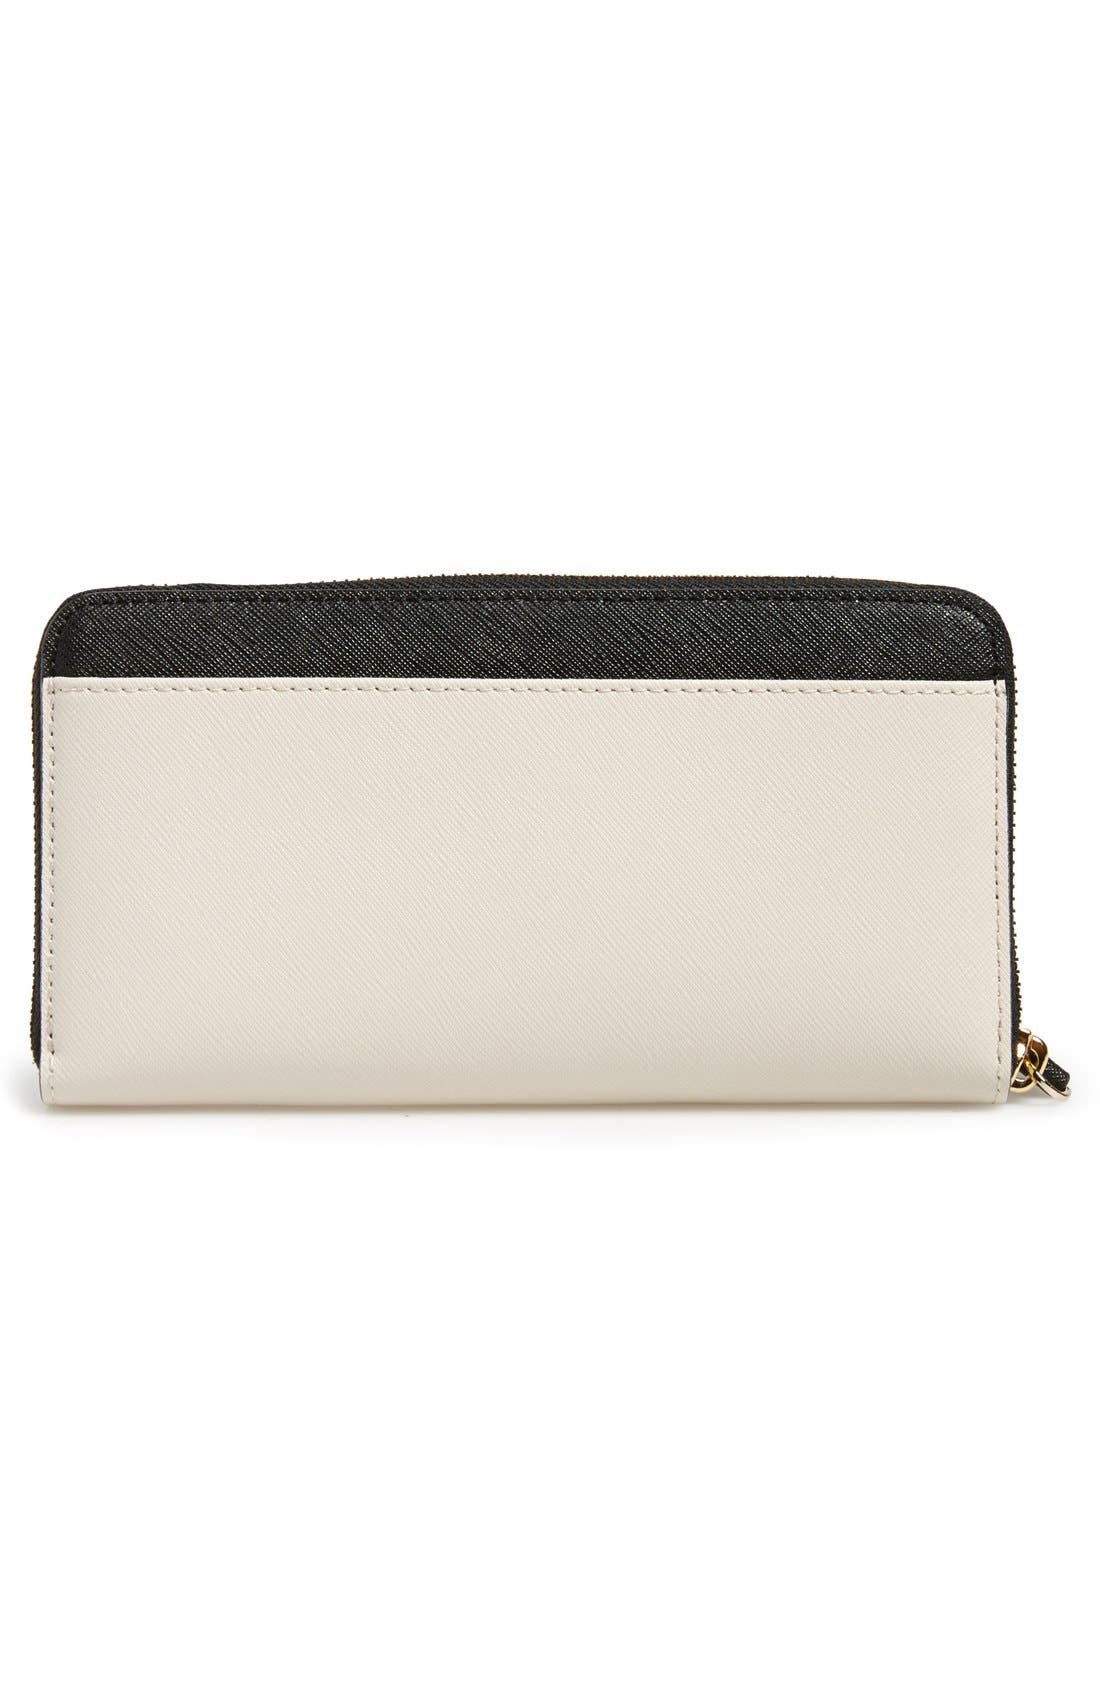 Alternate Image 3  - kate spade new york 'cedar street - lacey' wallet